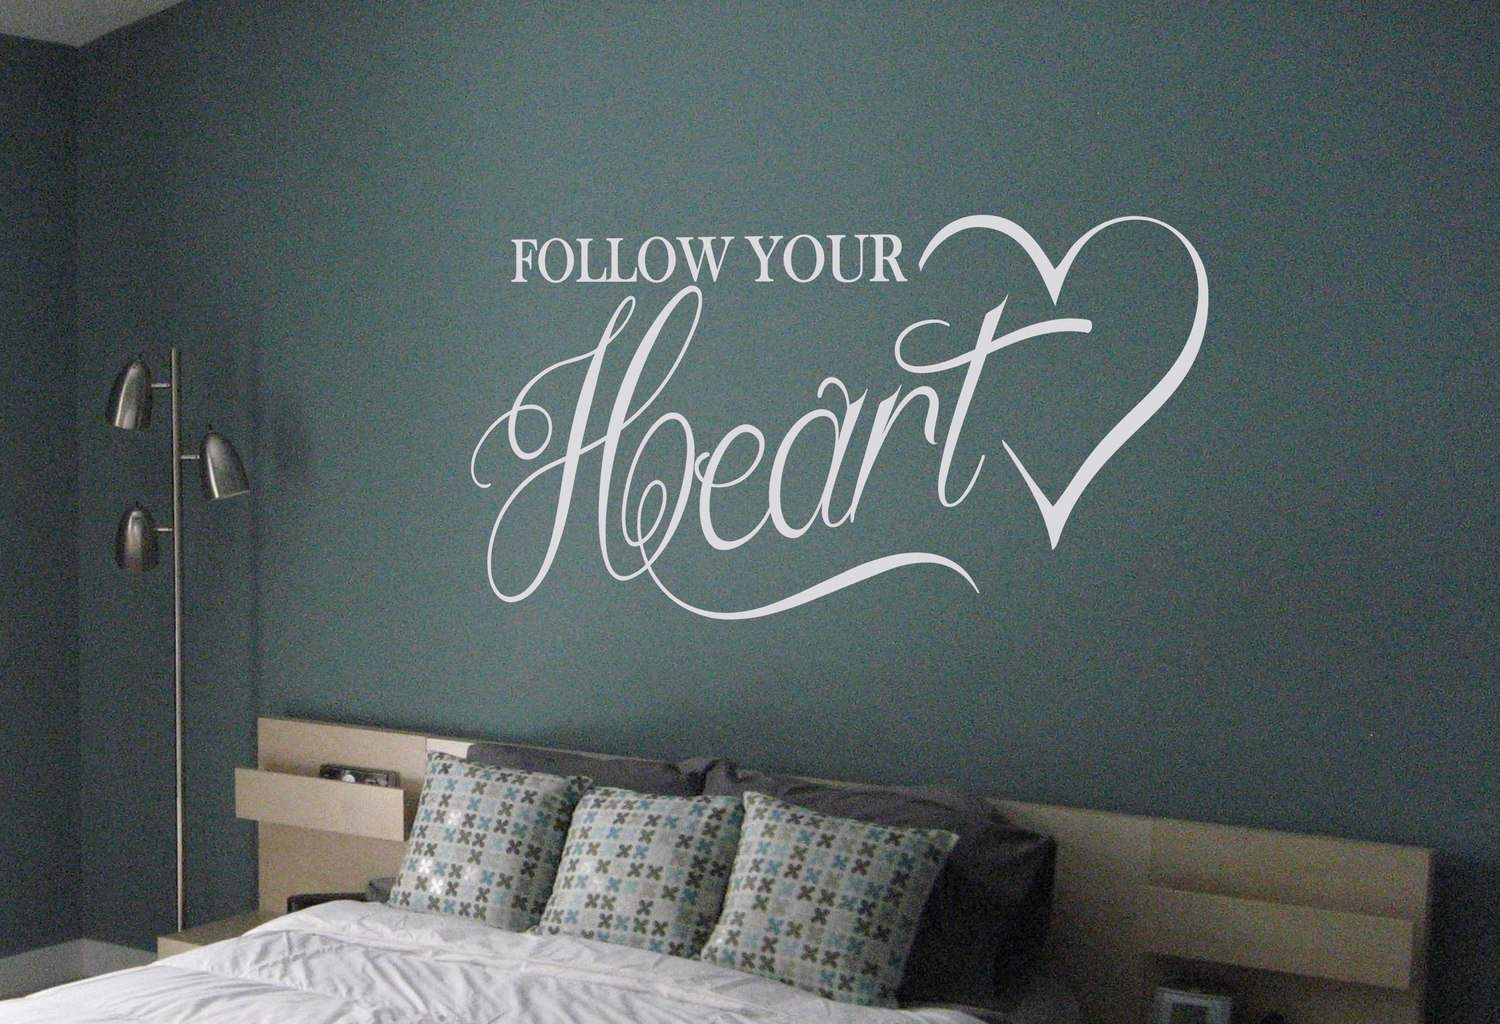 follow your heart wall art decal heart wall art decal follow your heart wall art decal